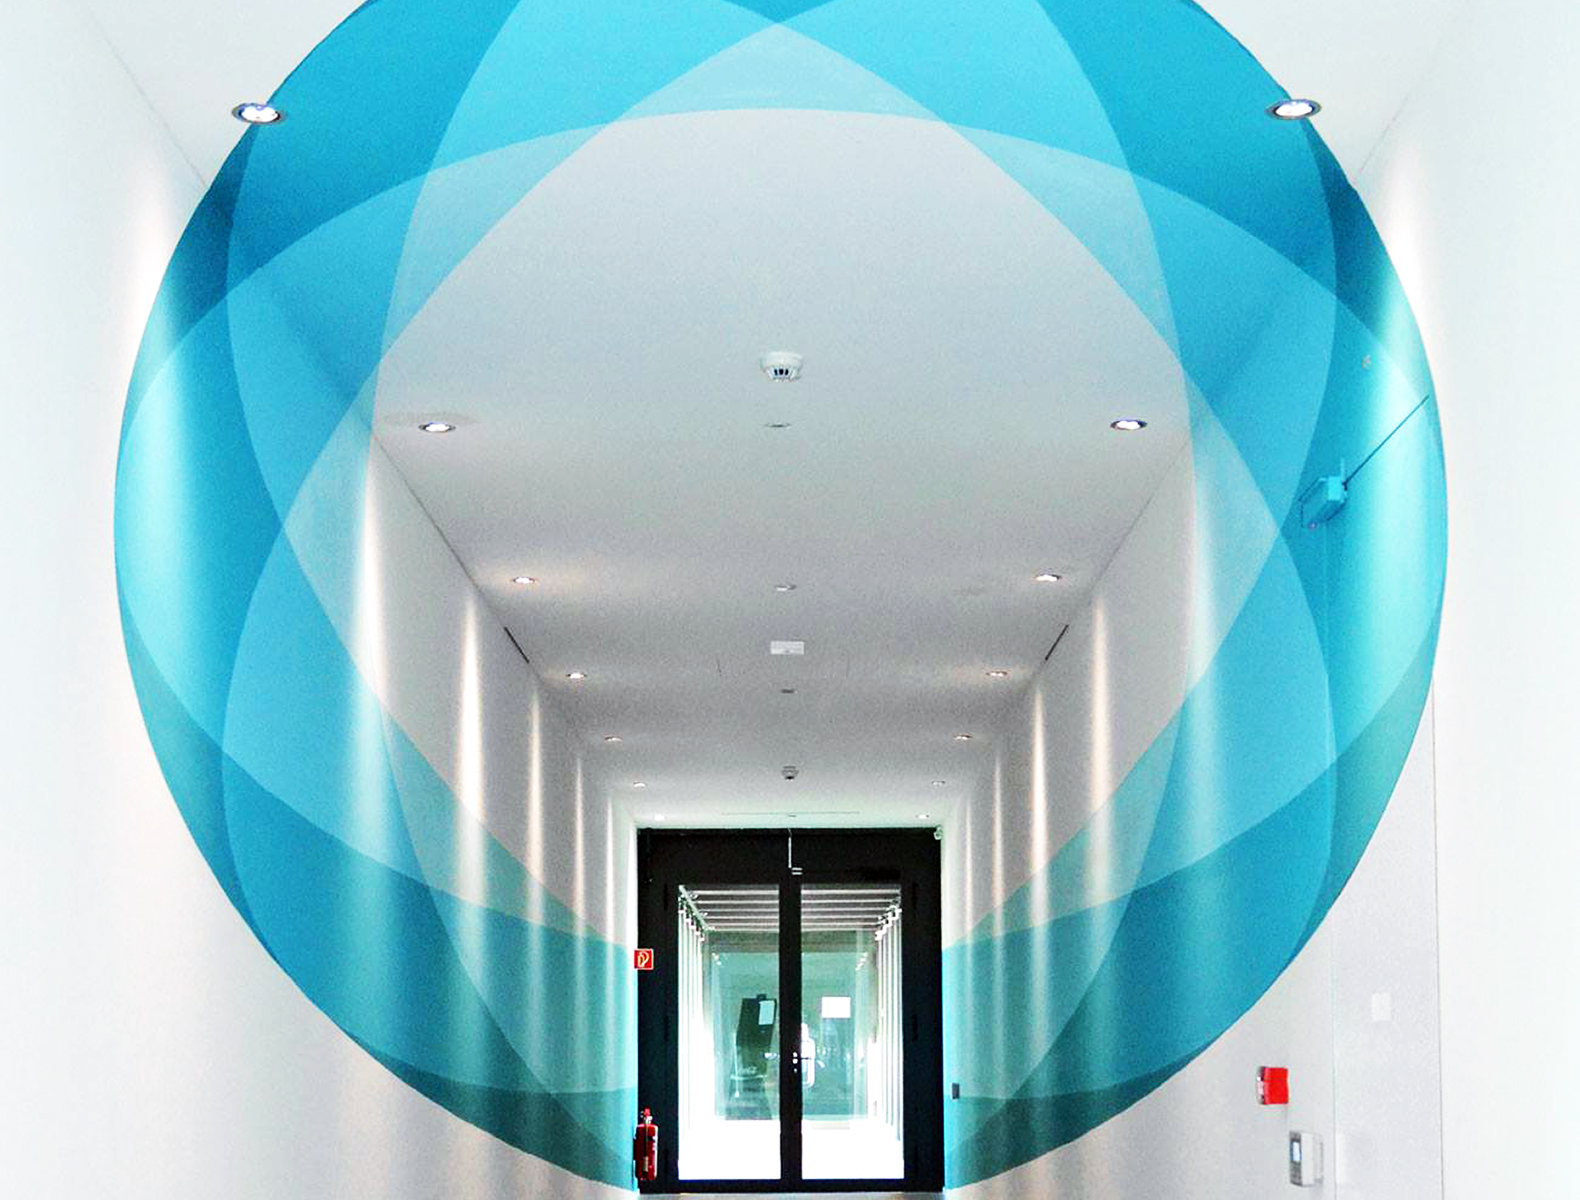 This mind-blowing hallway mural changes shape as you walk through it